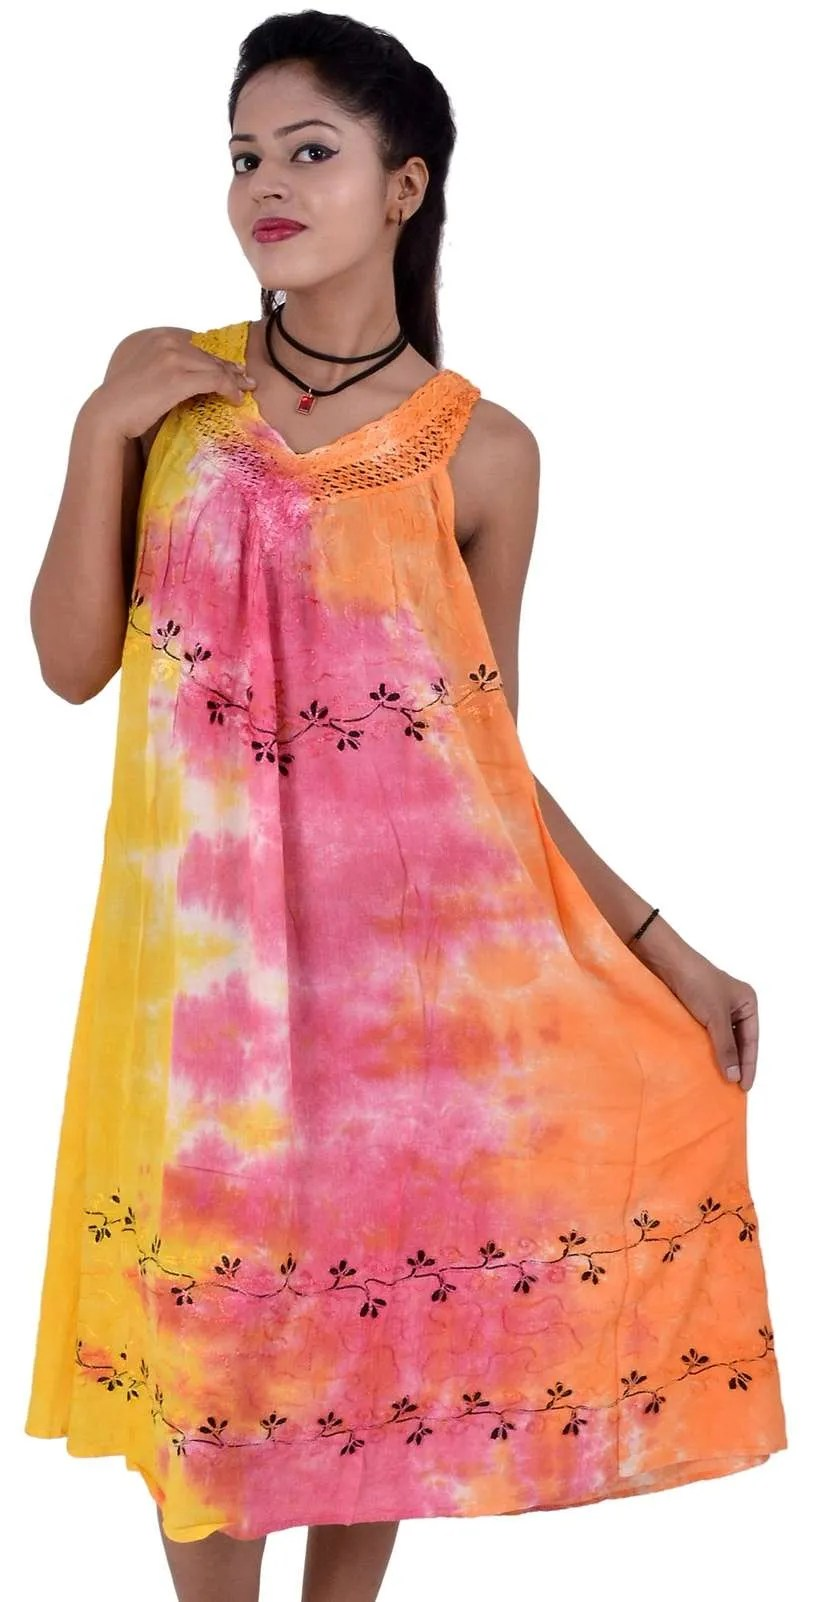 Wholesale Suppliers Dress Bali Clothing Online Wholesale Price And Free Shipping